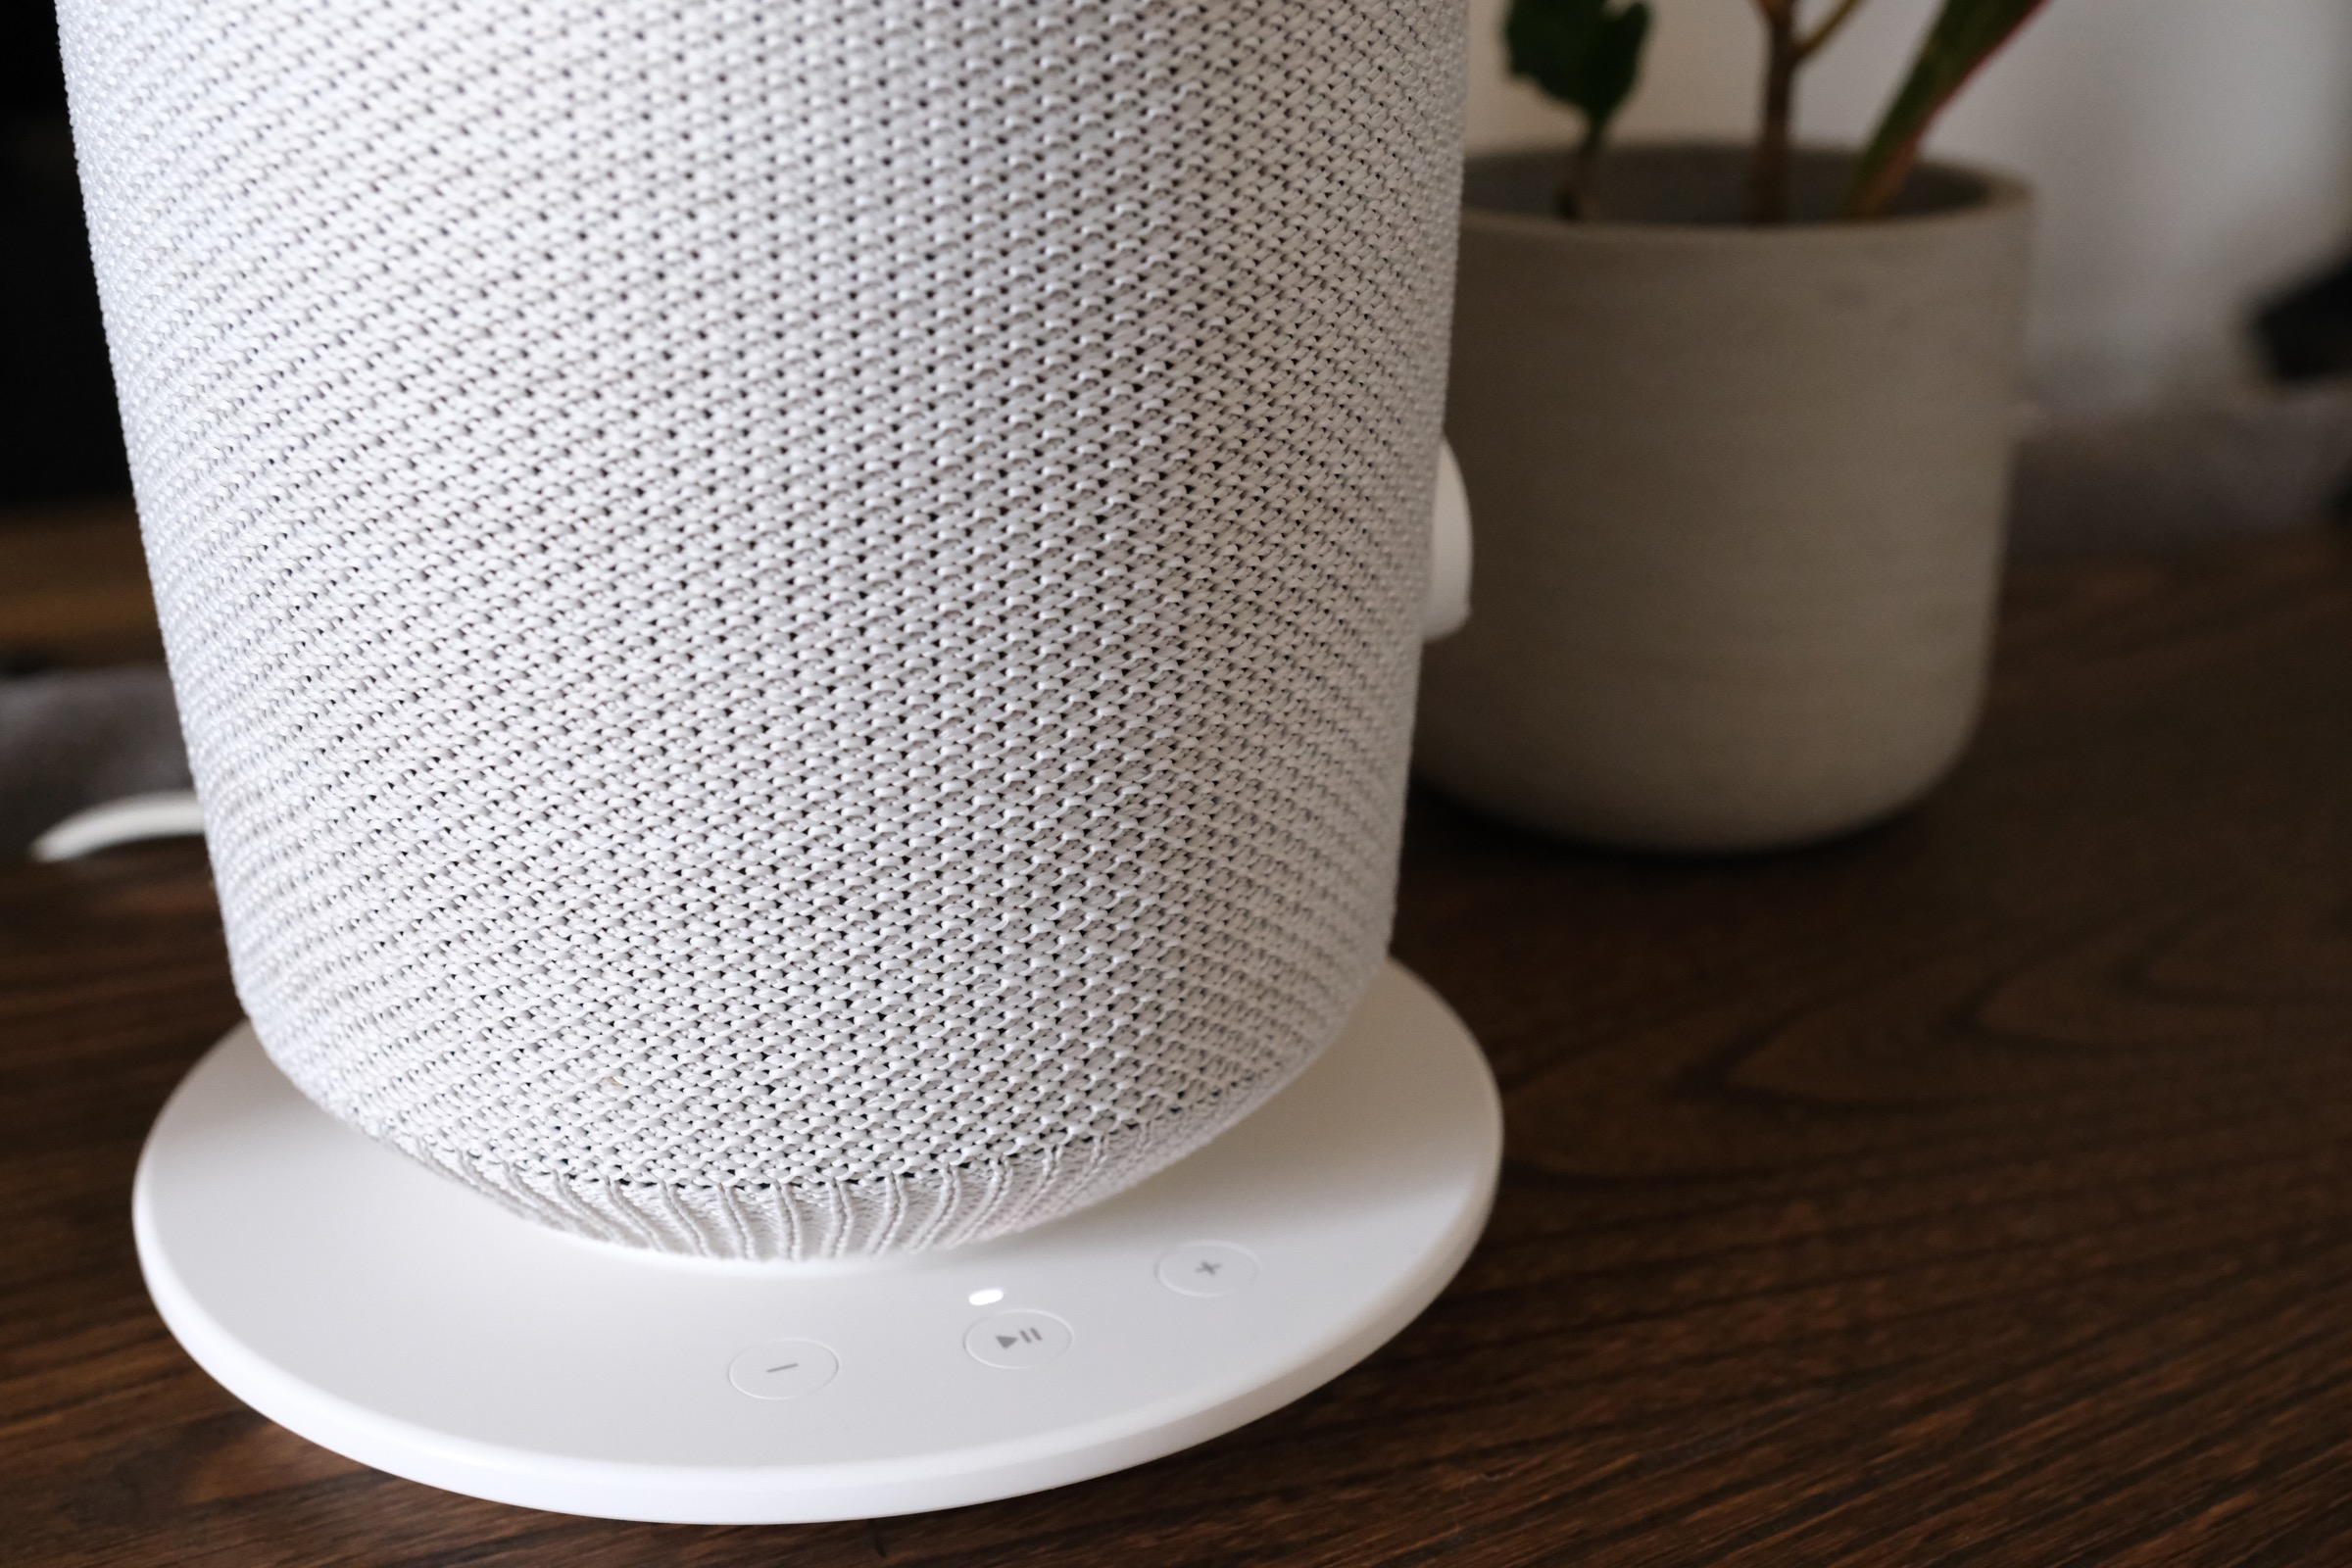 Sonos And Ikea S Symfonisk Wireless Speakers Are A Symphony Of Sound And Design Techcrunch